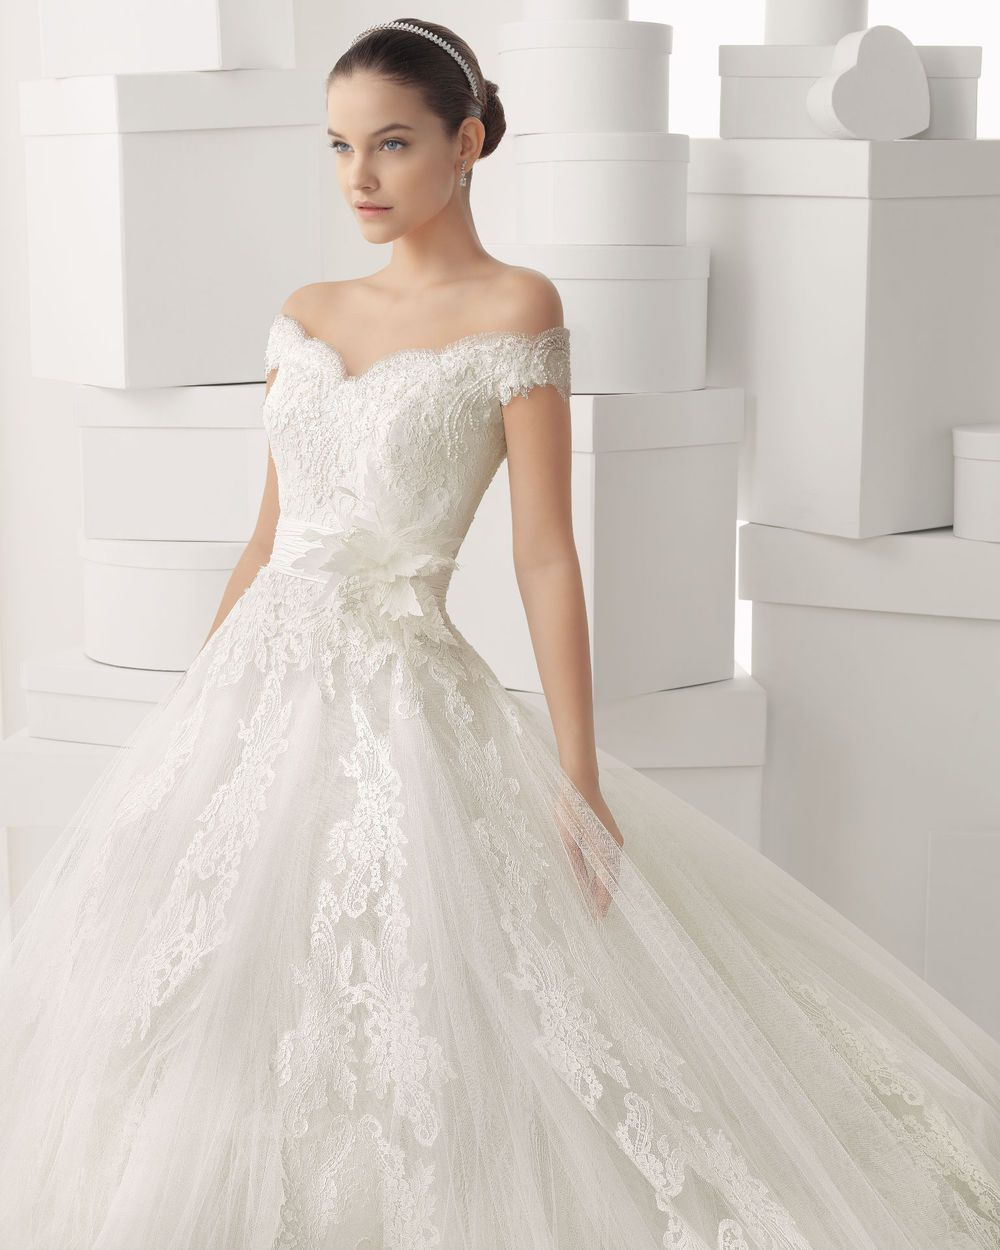 Buy 2014 glamorous off the shoulder ball gown lace wedding for Buy wedding dress online cheap